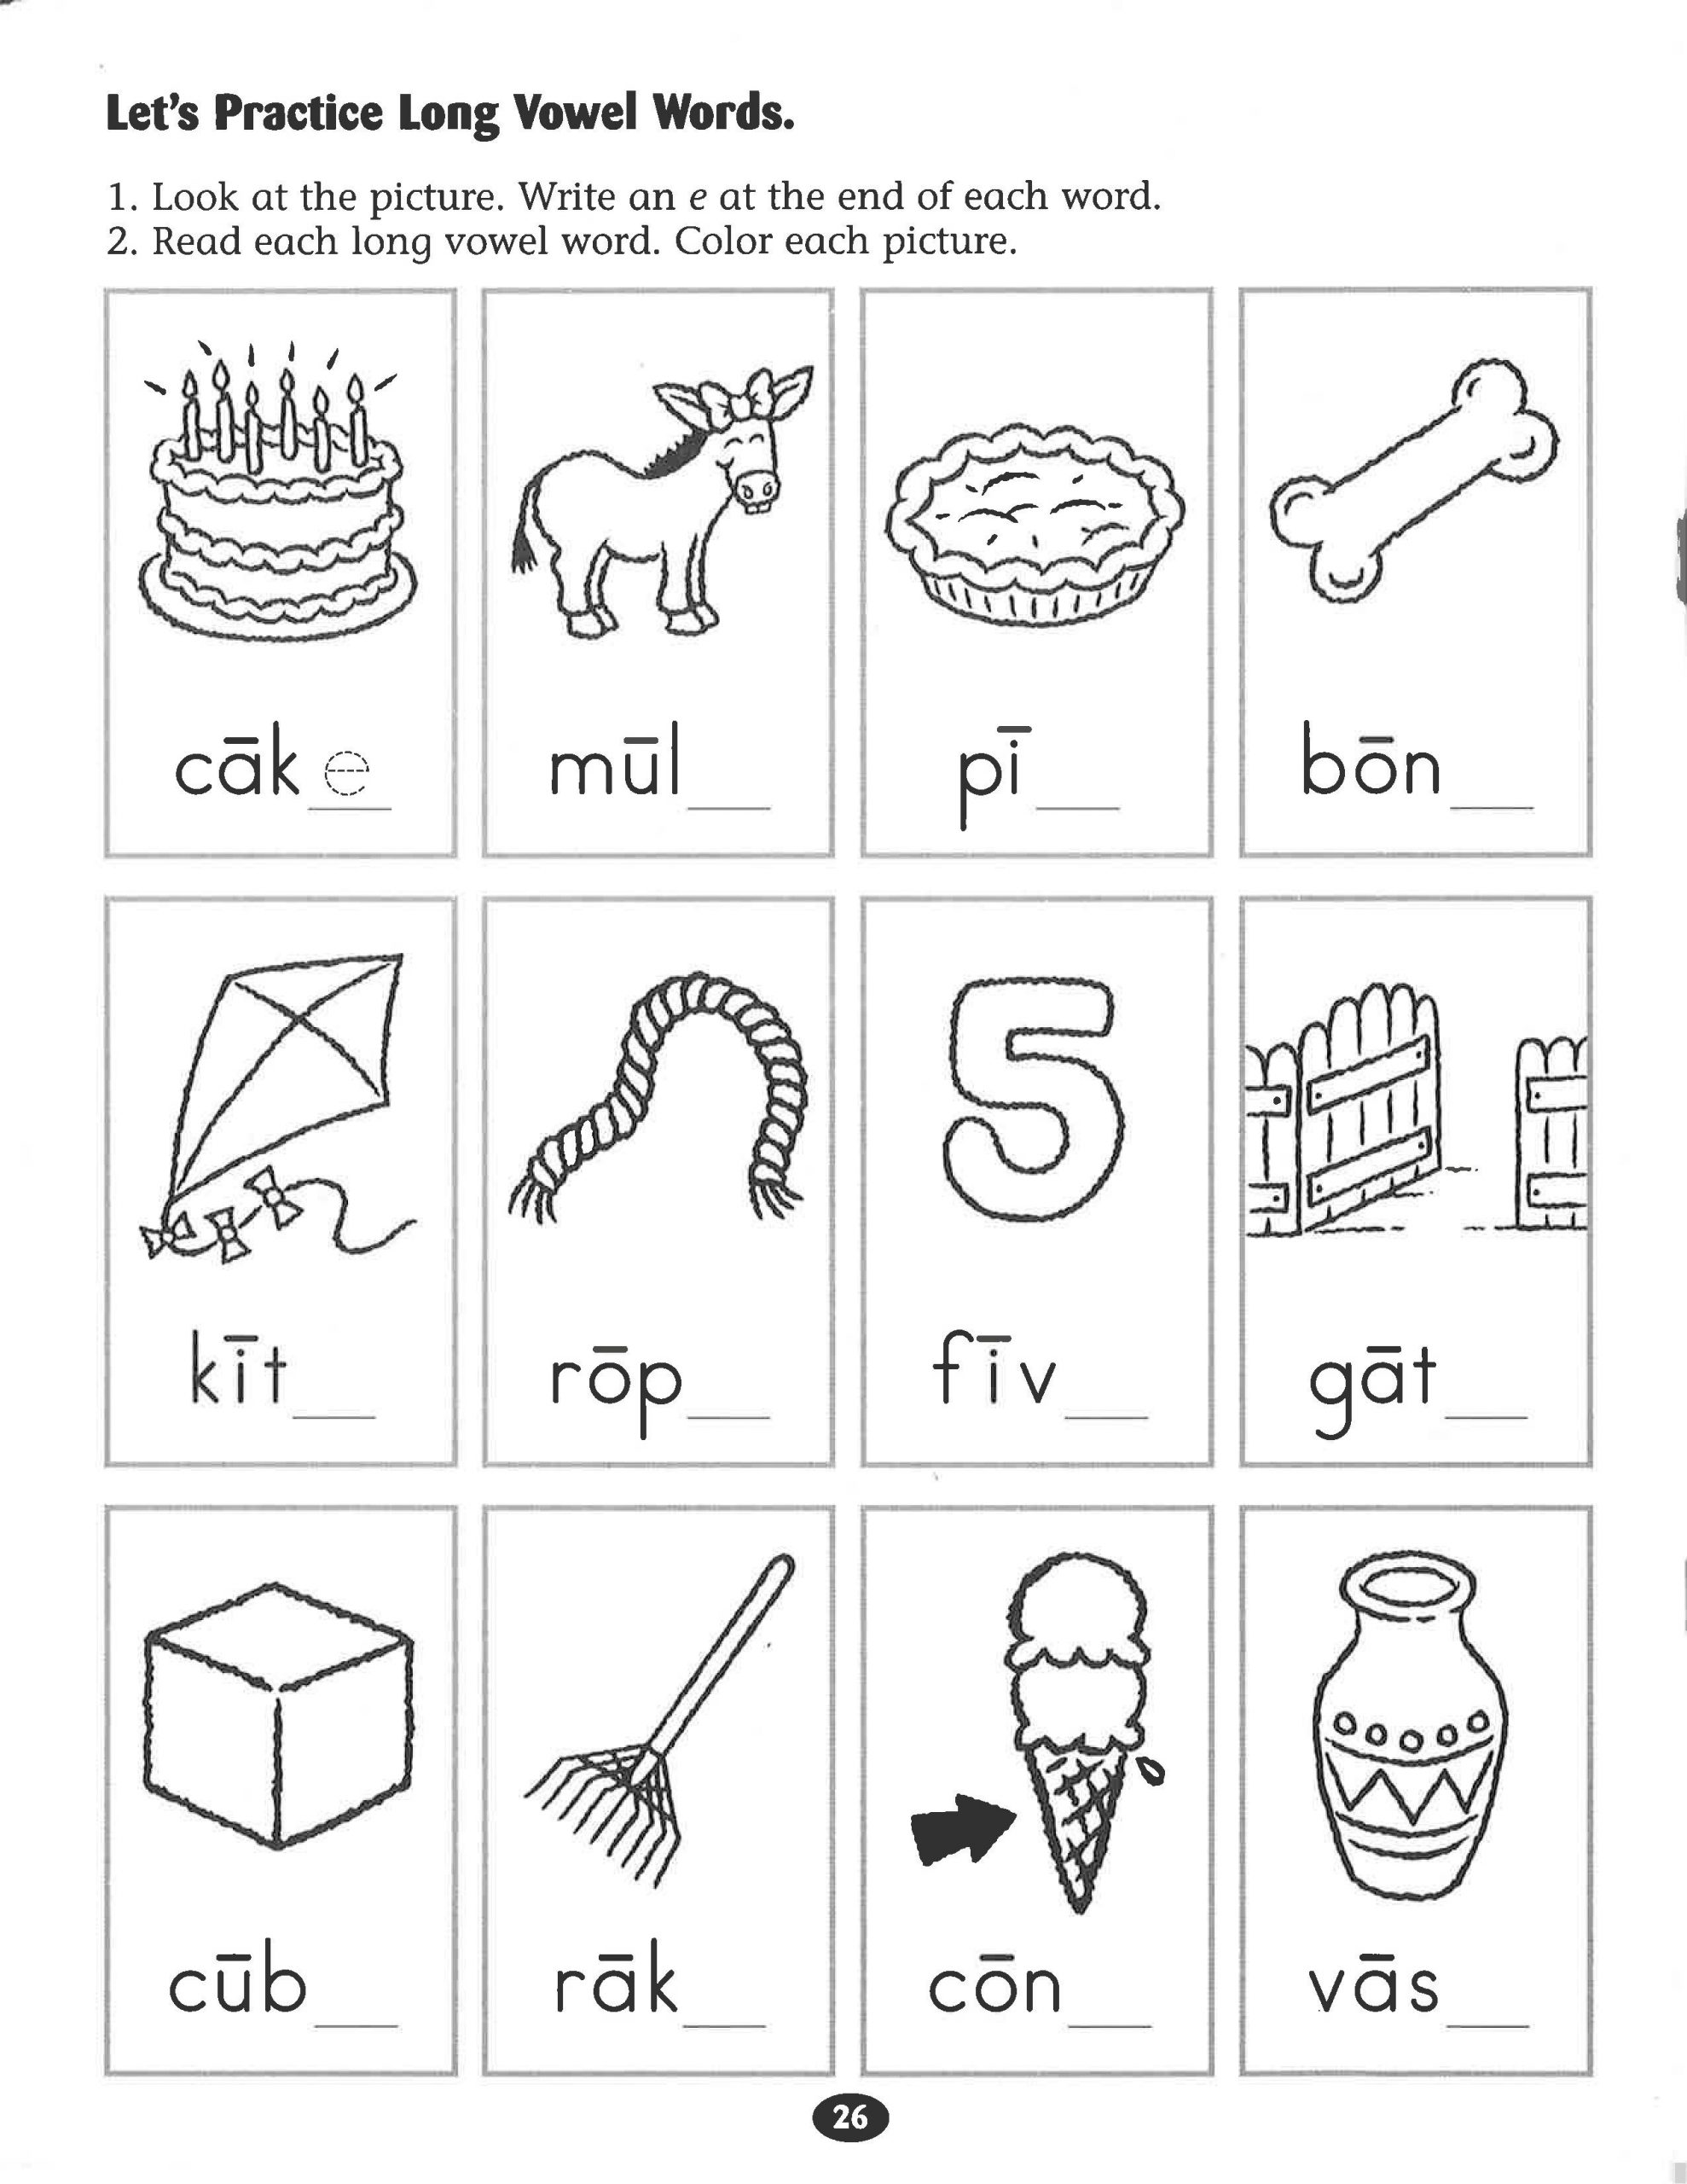 Free Printable Long Vowel Worksheets Let S Practice Long Vowel Words Worksheet